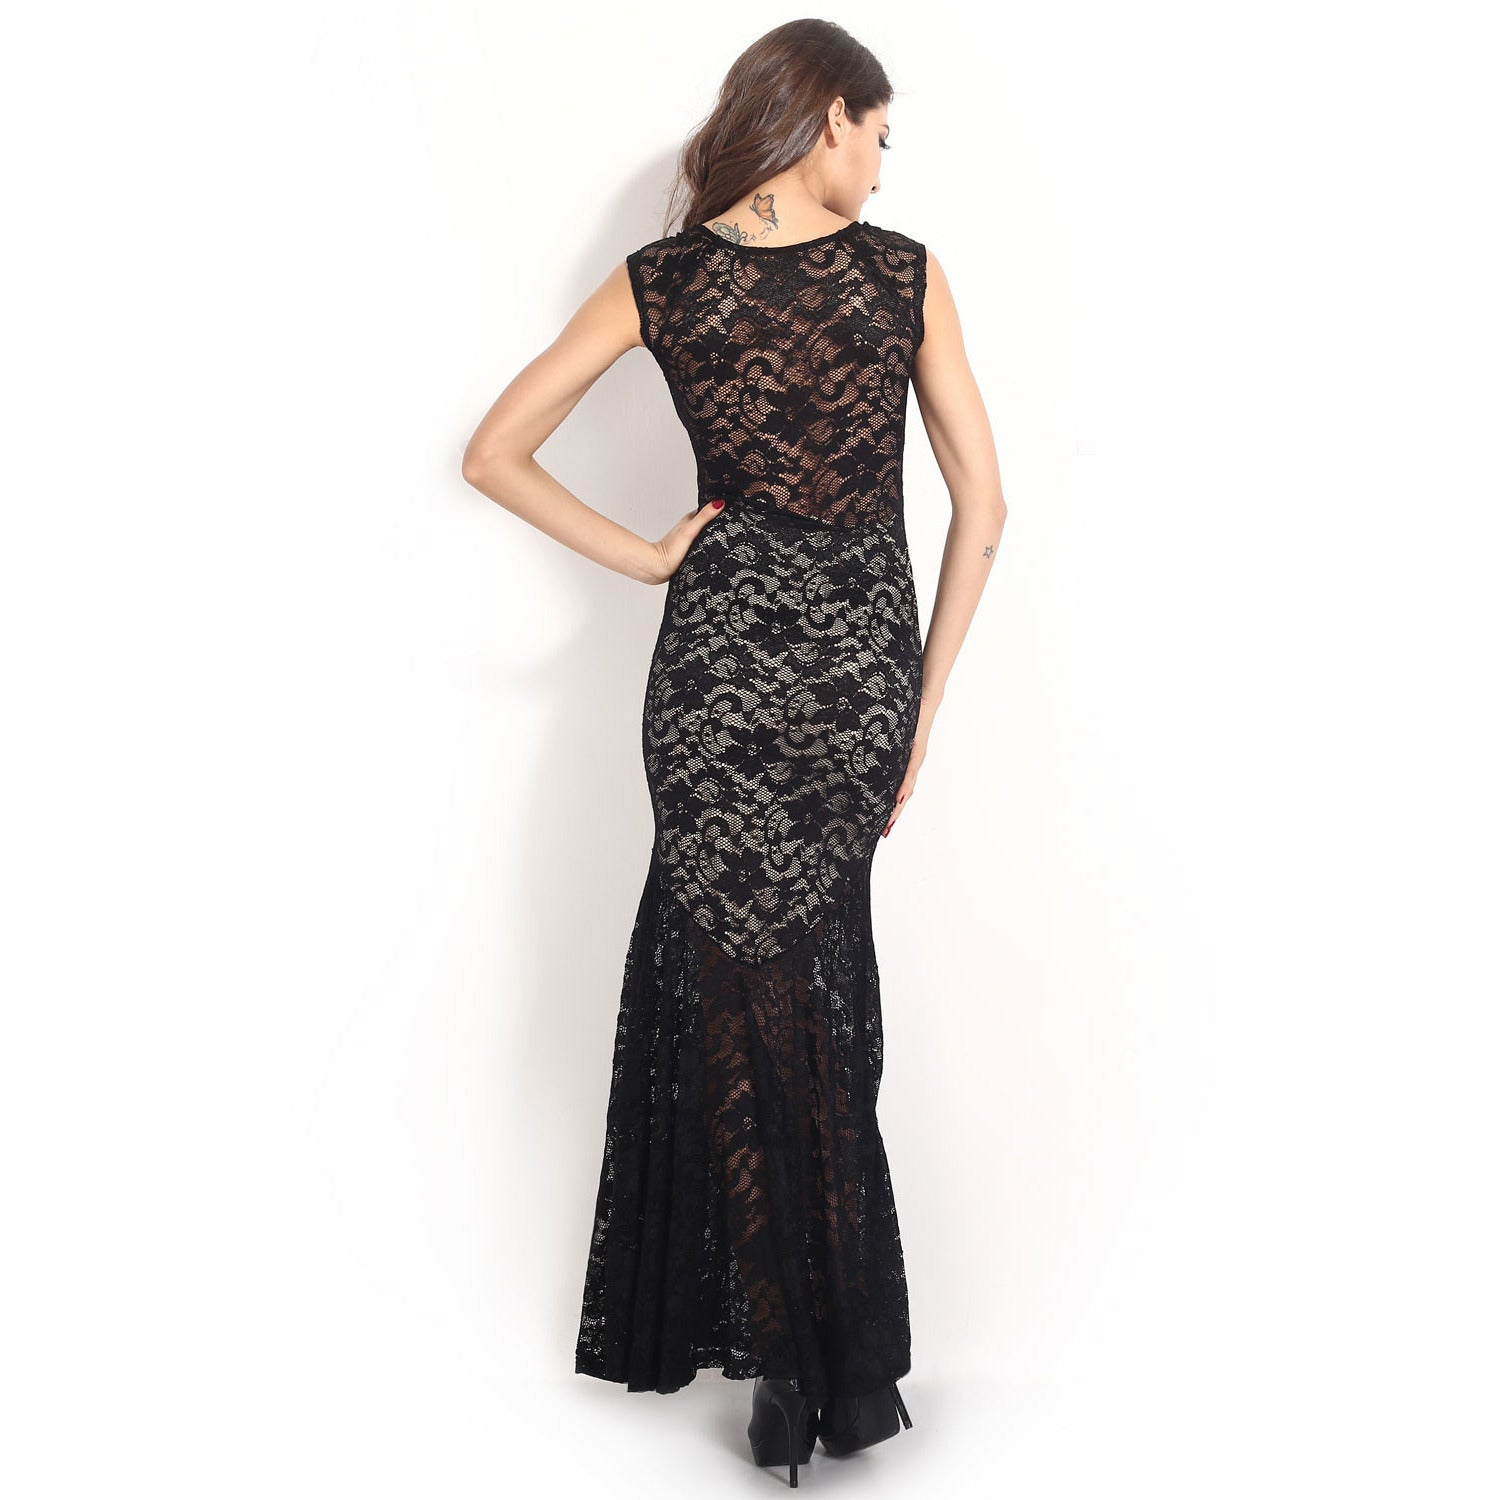 Sexy Lined Long Lace Evening Dress Sale LAVELIQ - LAVELIQ - 8